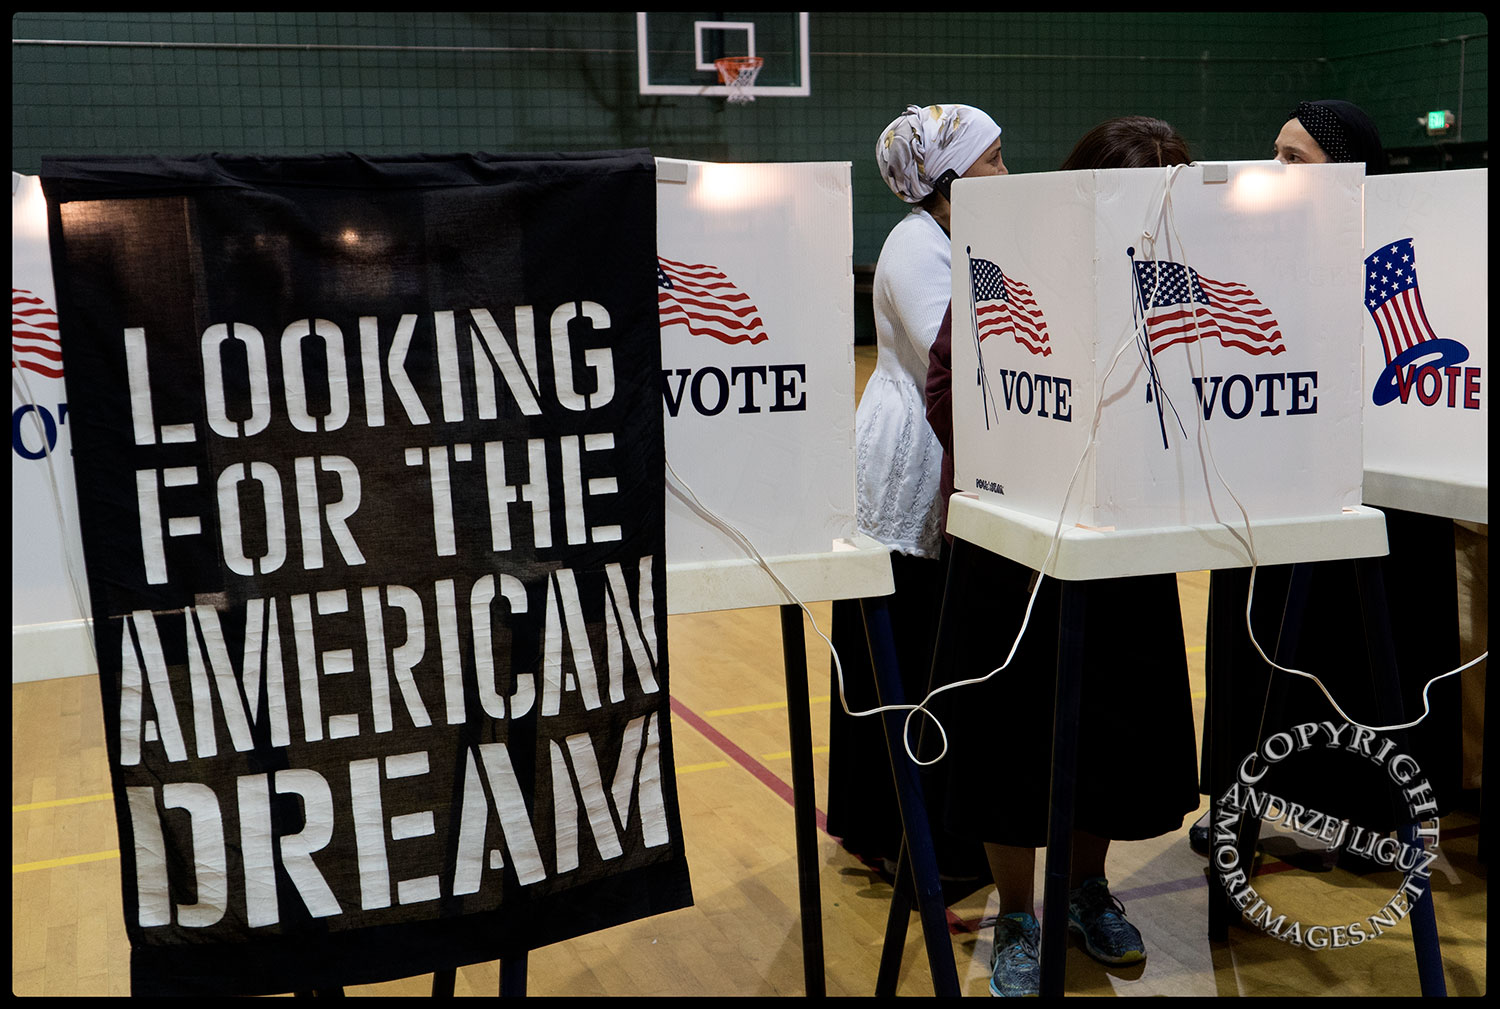 Looking for the American Dream at Election 2016 in Hollywood, CA